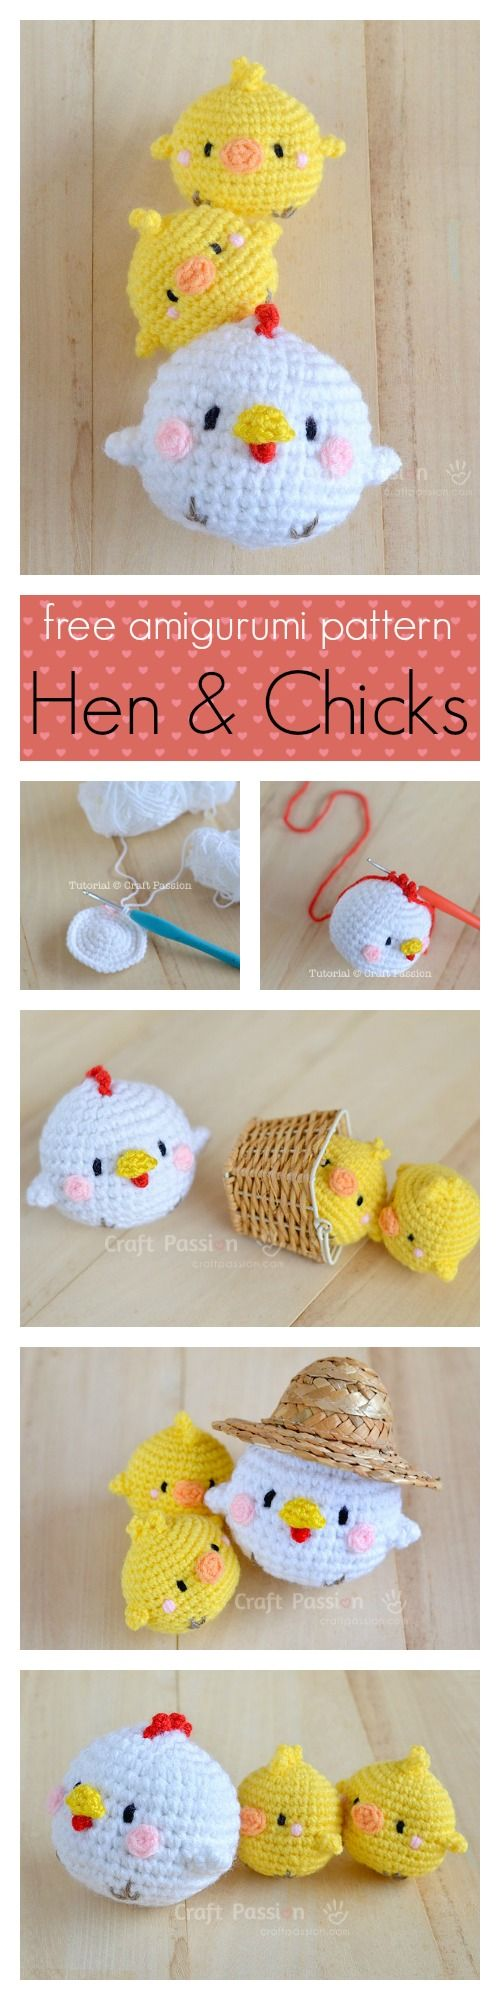 Free hen & chicks amigurumi pattern with tutorial photos to refer, designed by AmiguruMEI. Perfect to make for the Easter and Rooster year celebration.